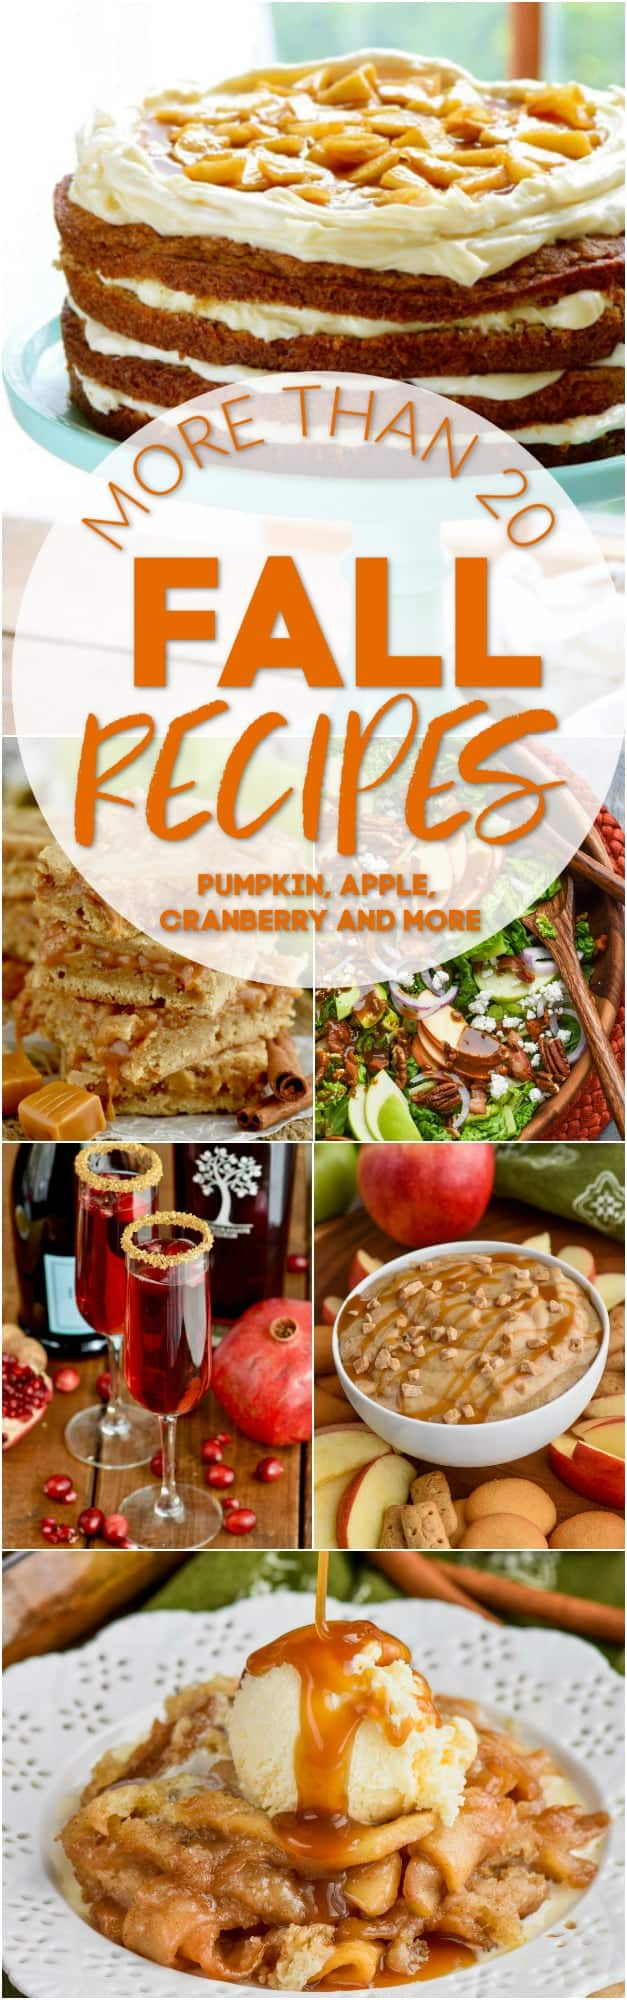 collage of fall recipes